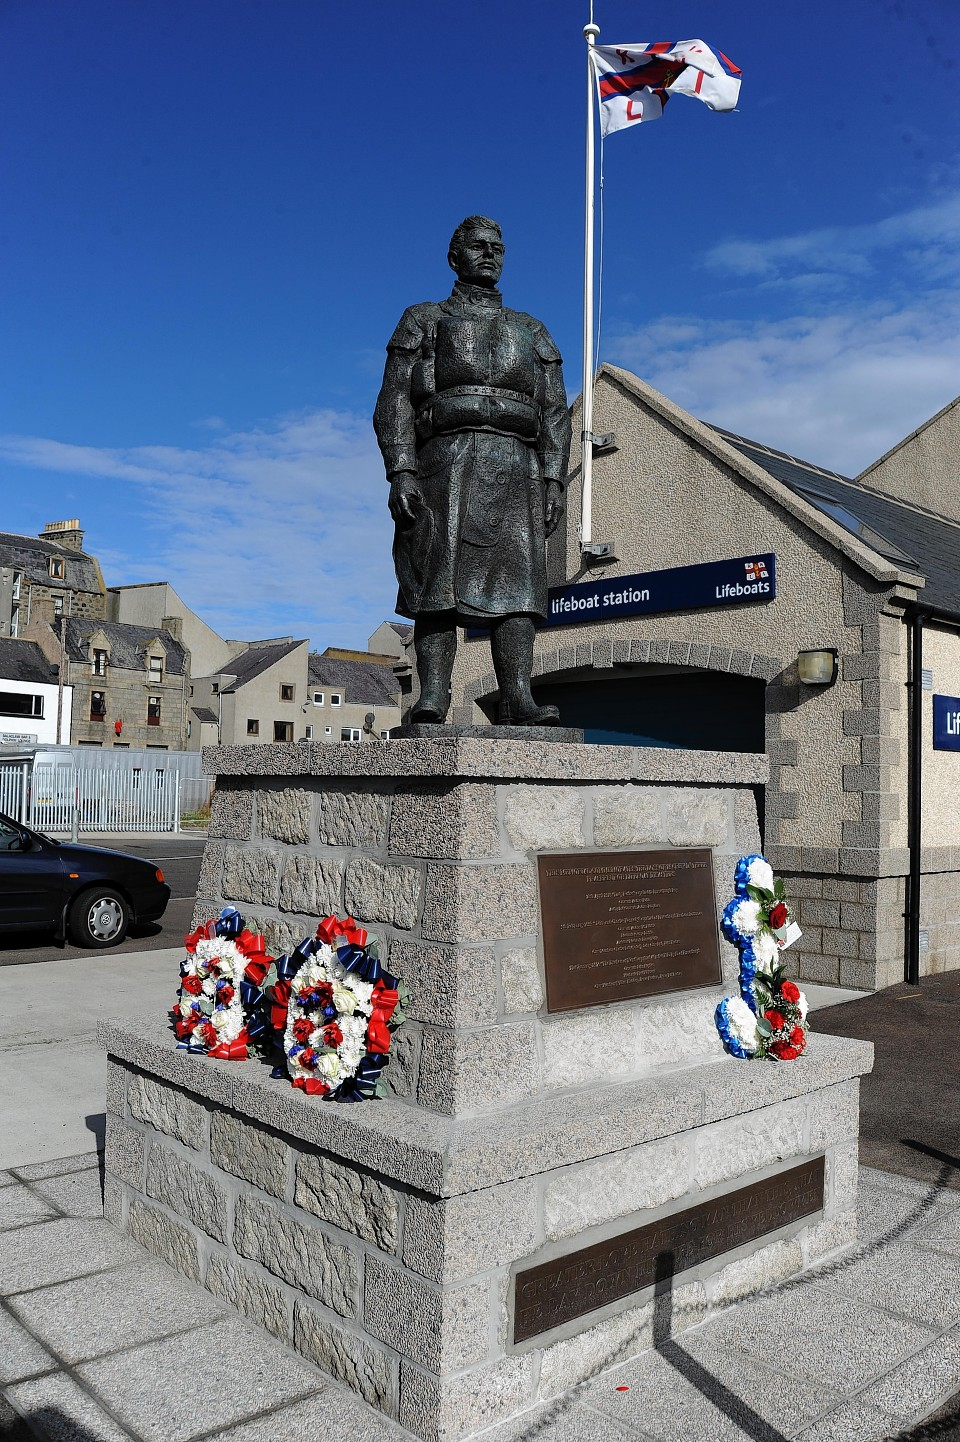 The memorial statue at Fraserburgh Lifeboat Station.